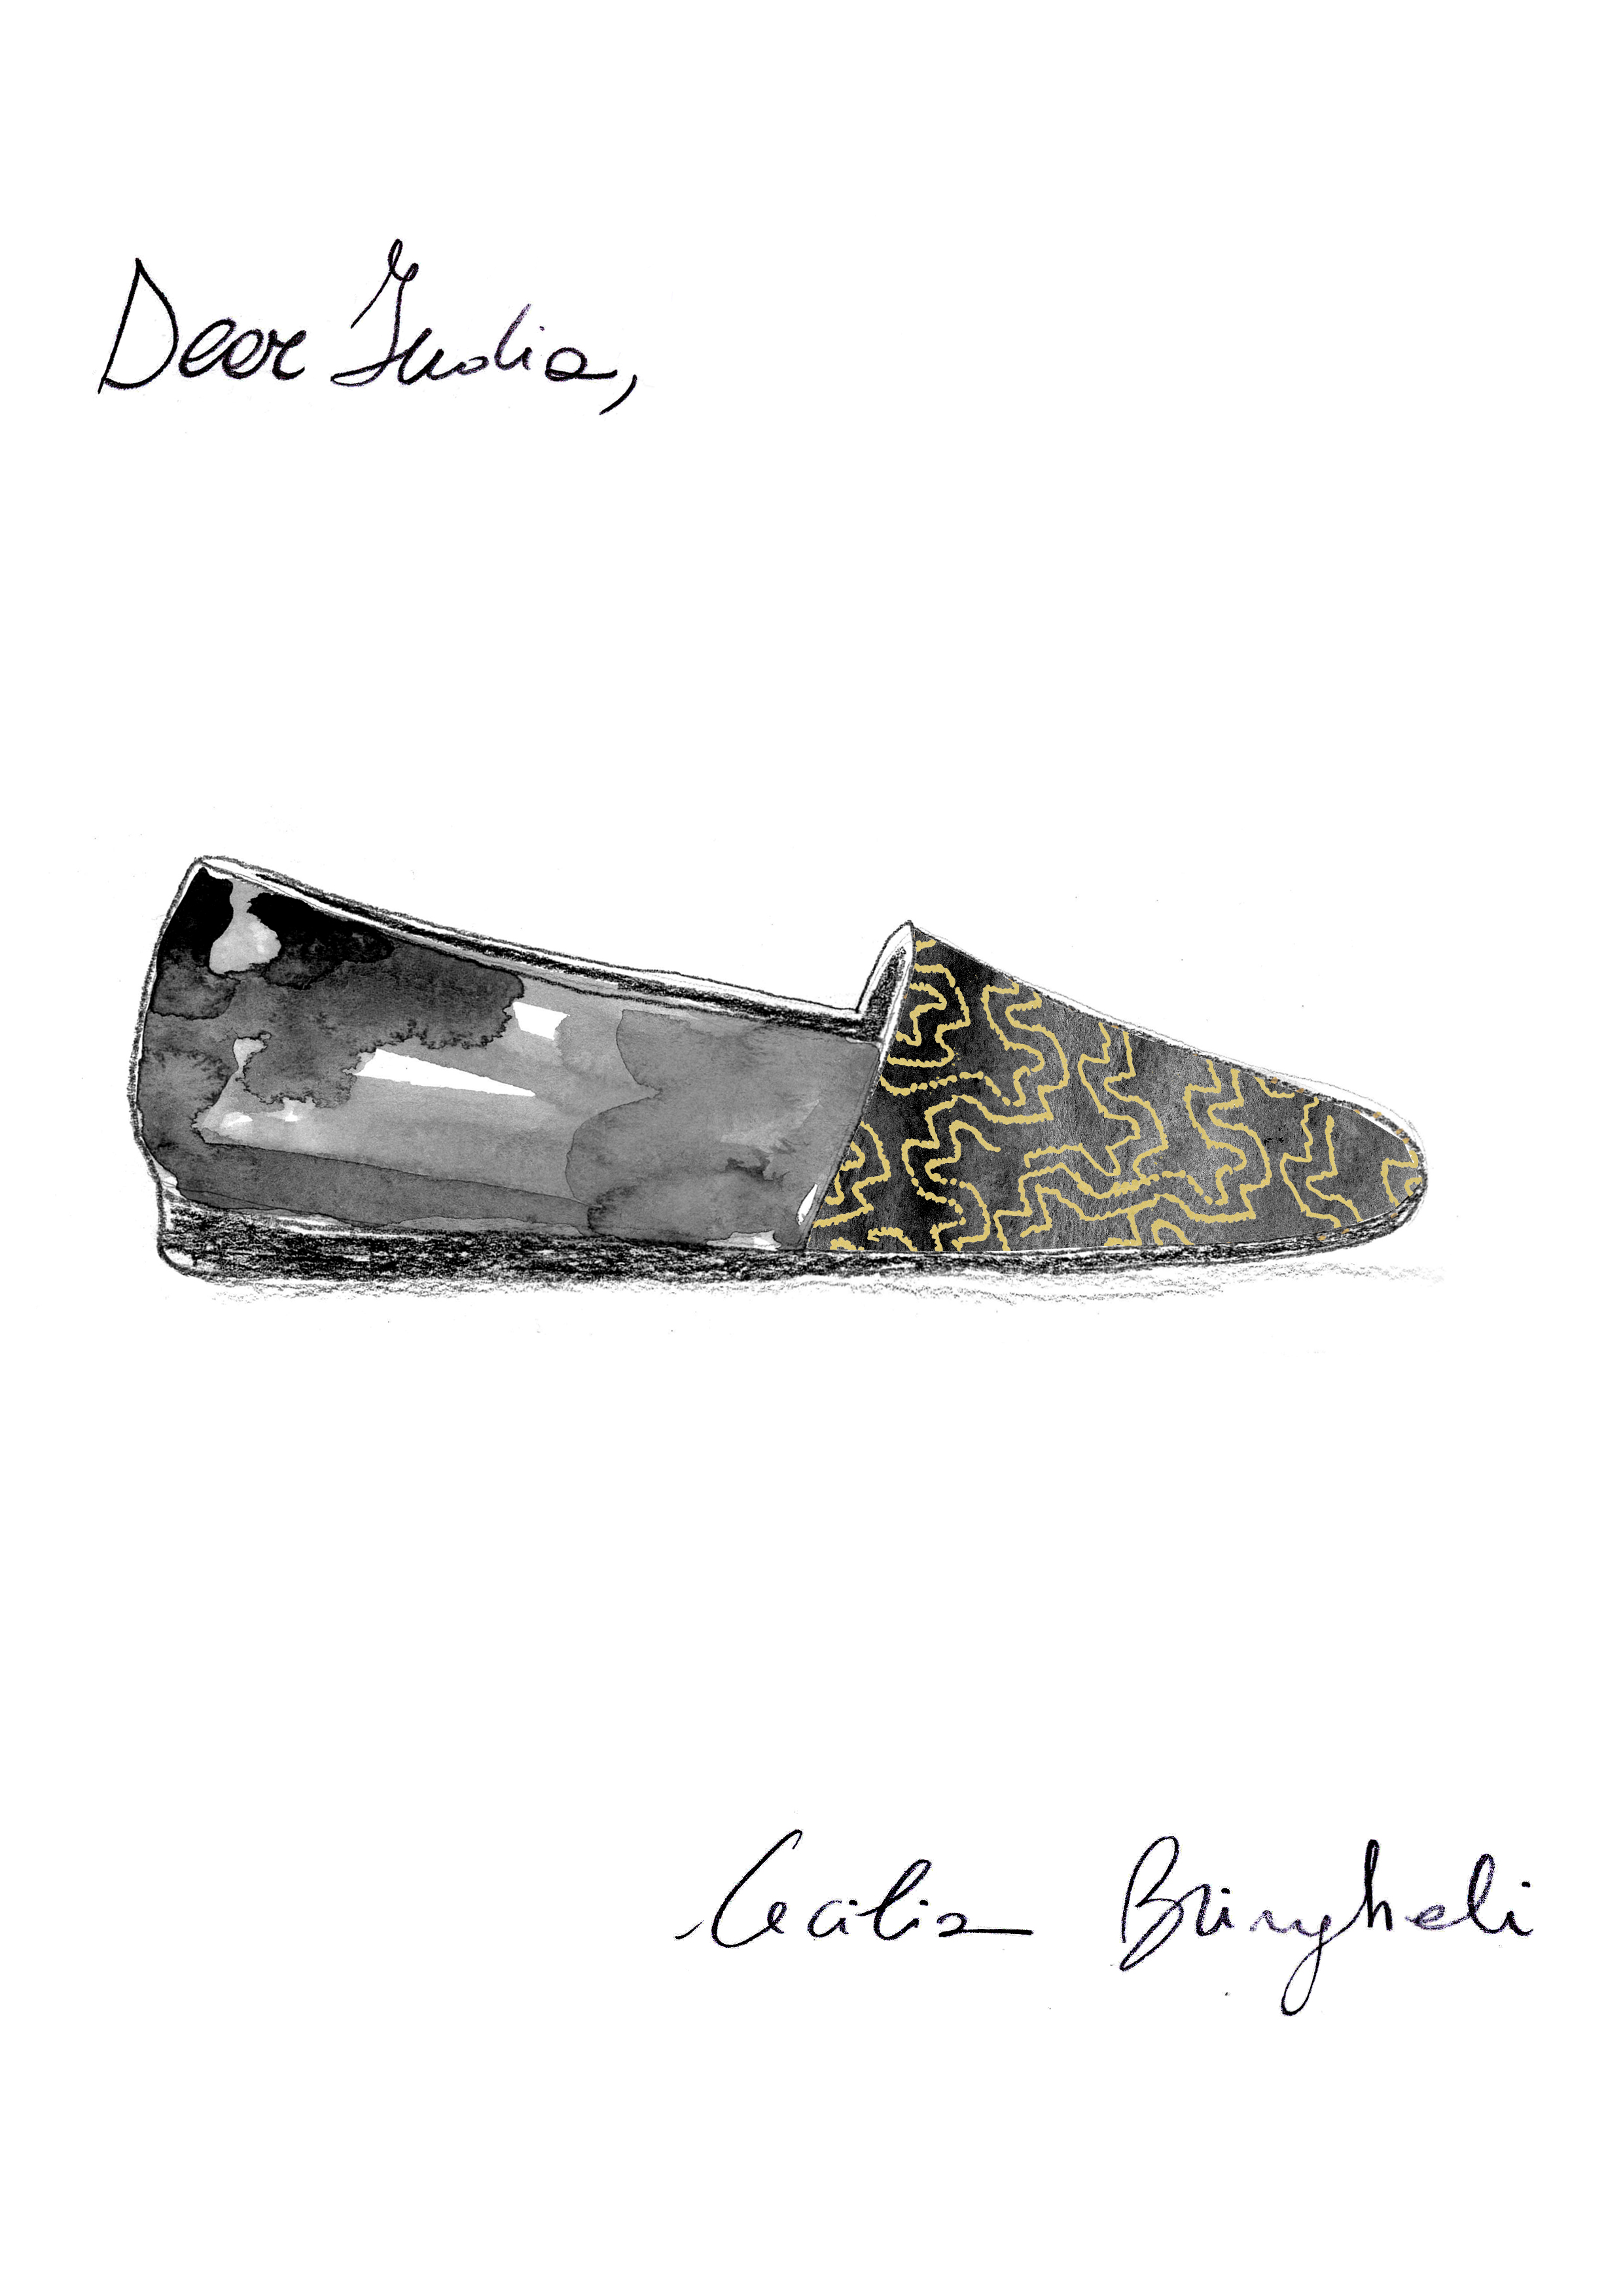 Wish List Alert: The Stunning India-Inspired Footwear Collection at Level Shoes